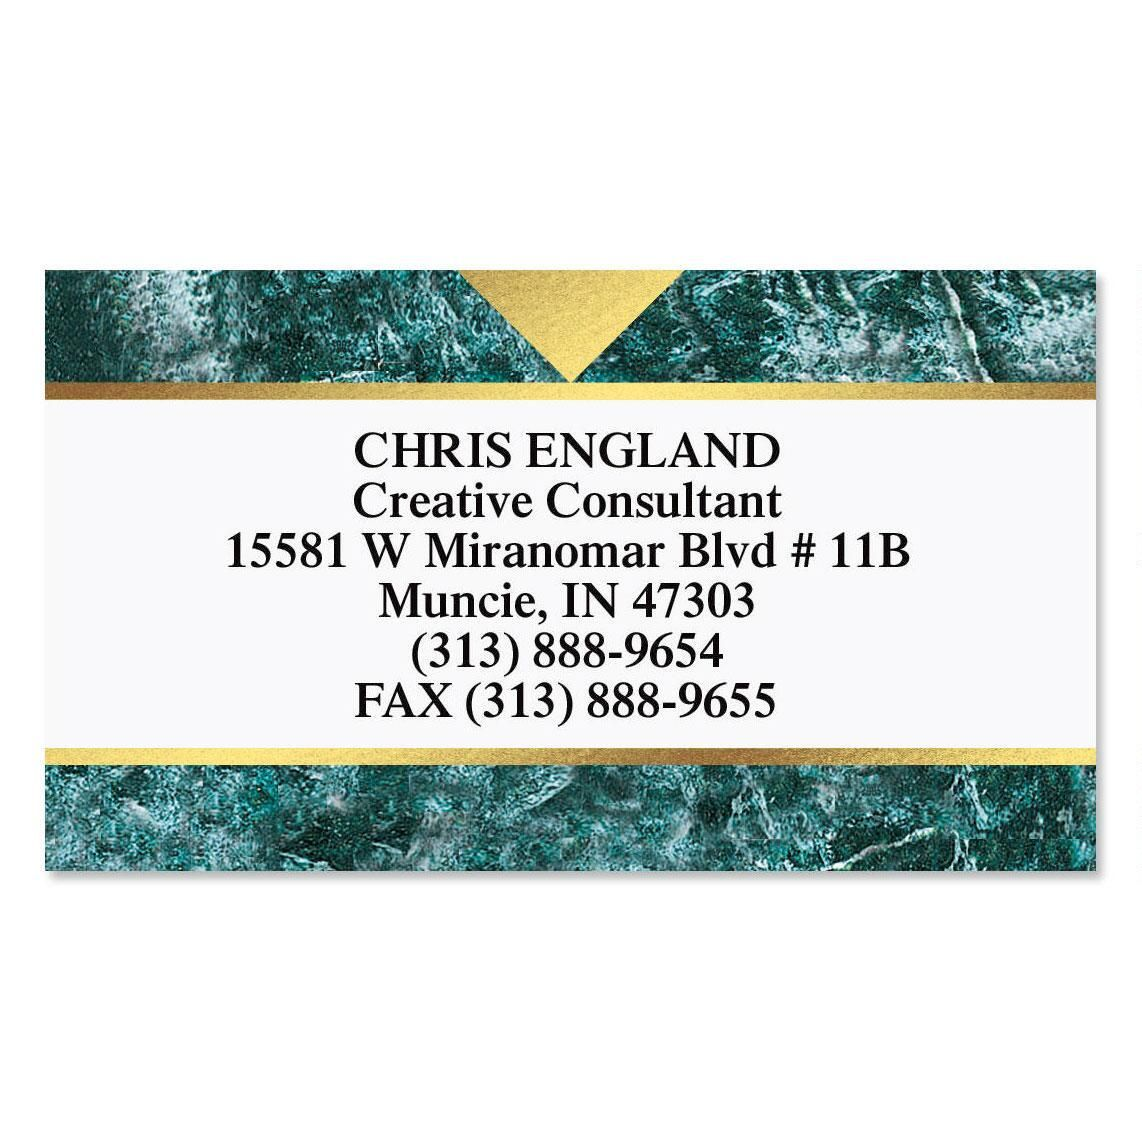 Personalized Calling Cards, Business Cards | Current Catalog